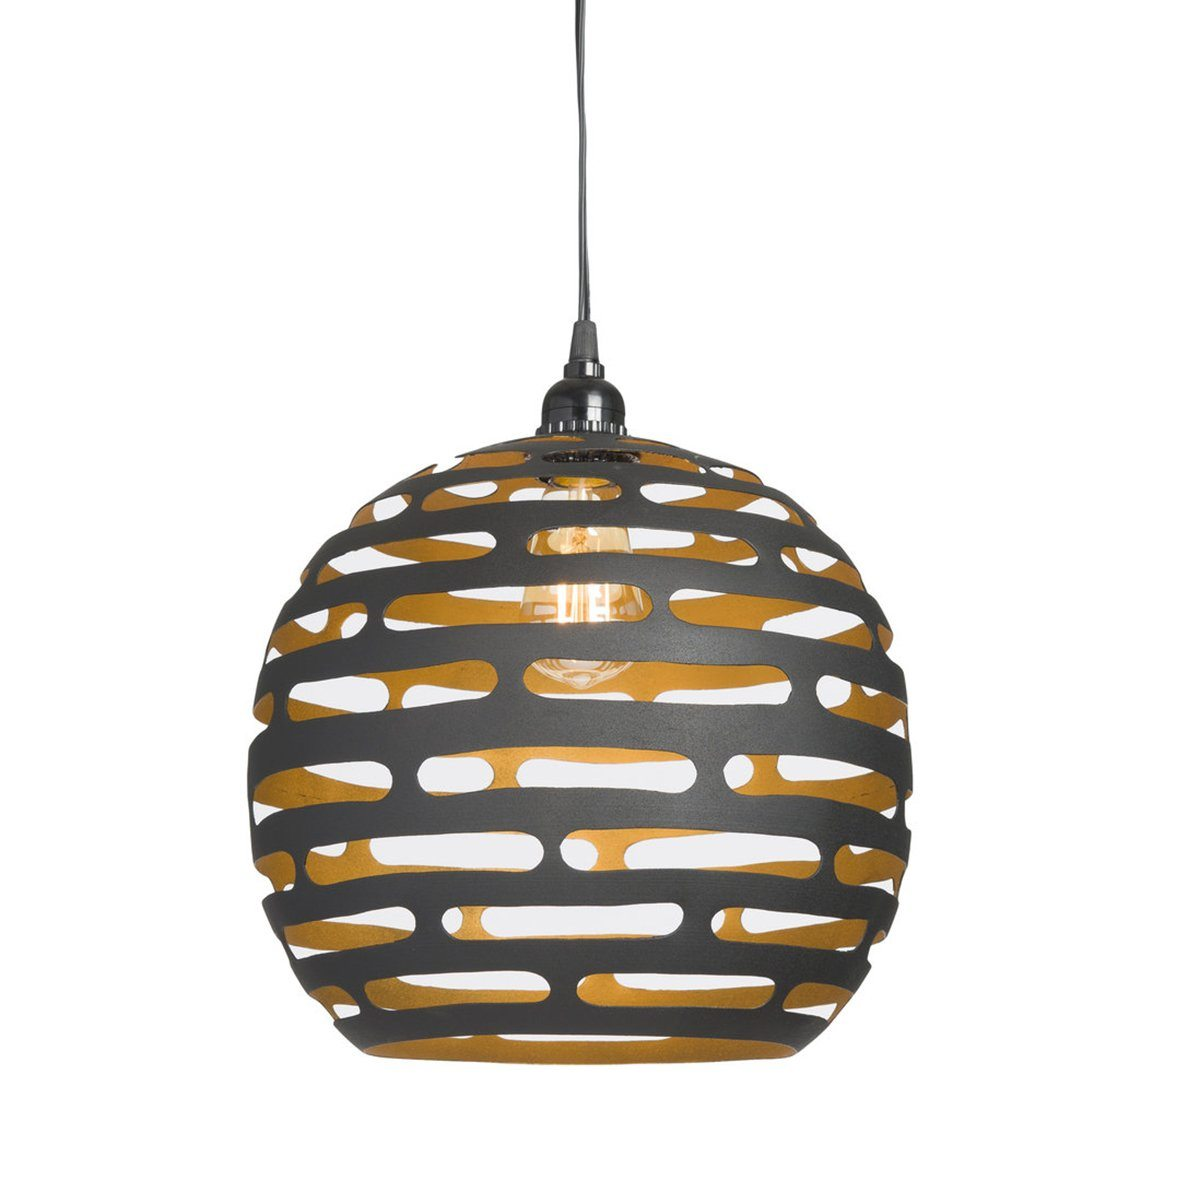 EARTH WIND FIRE LIGHTING PENDANT LARGE BLACK/GOLD - Showhome Furniture